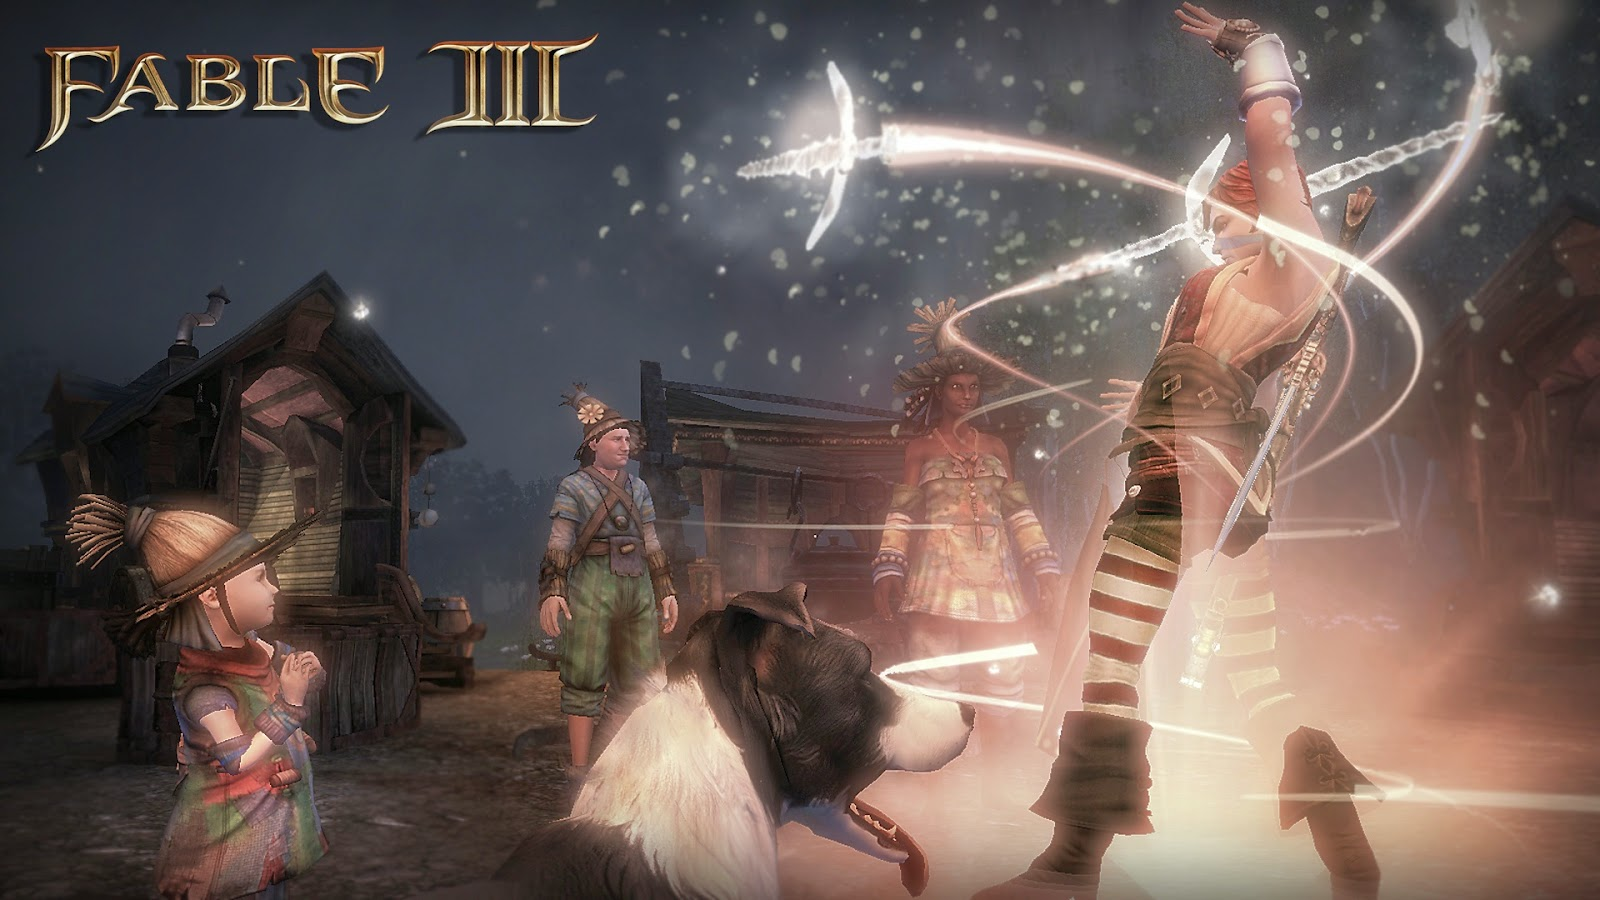 Fable 3 game review picture of player casting spells in a village